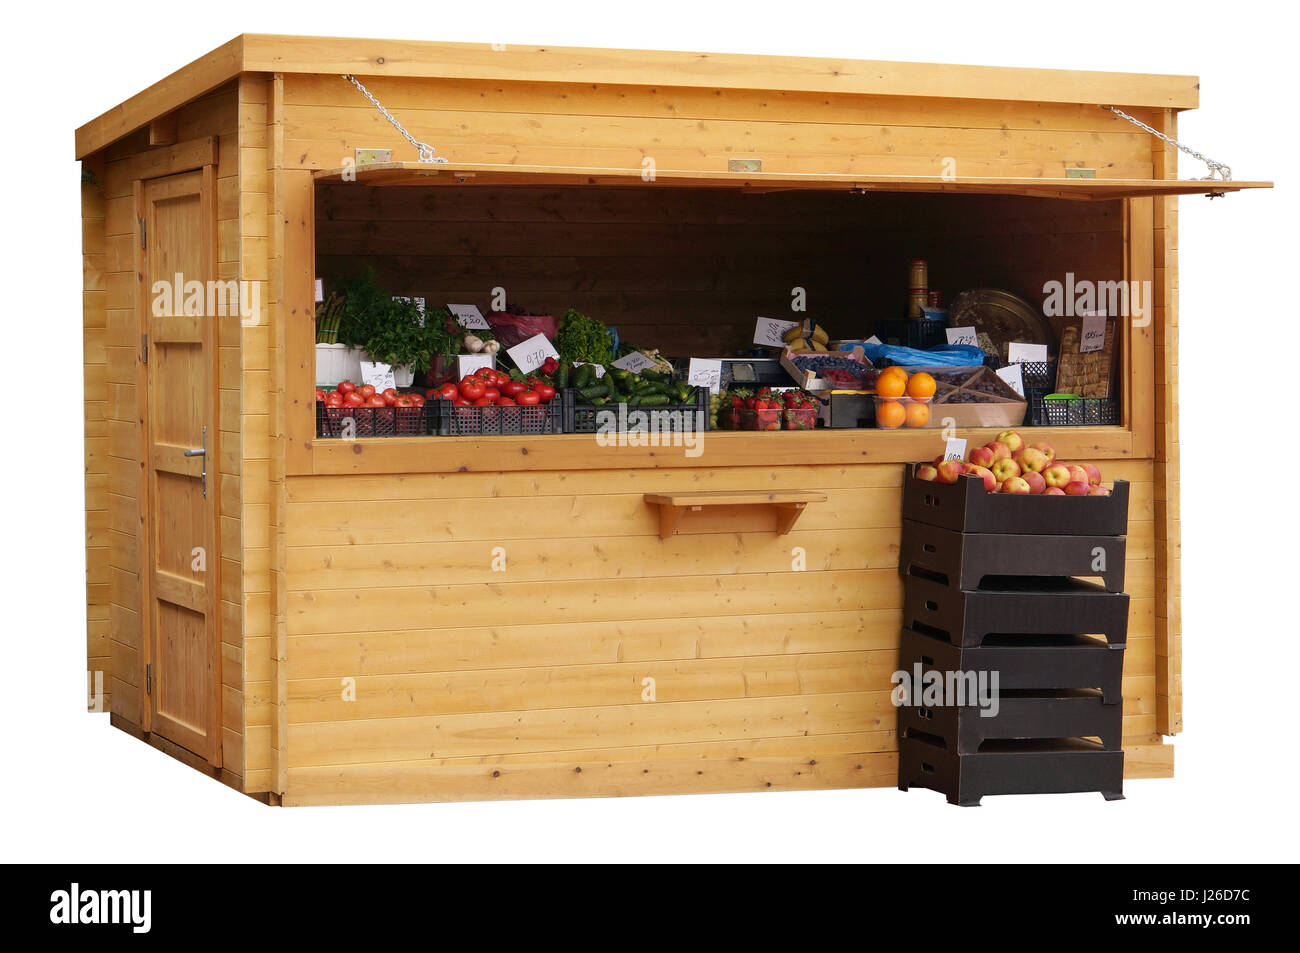 In a wooden no name street booth sell fruit and vegetables. Isolated - Stock Image